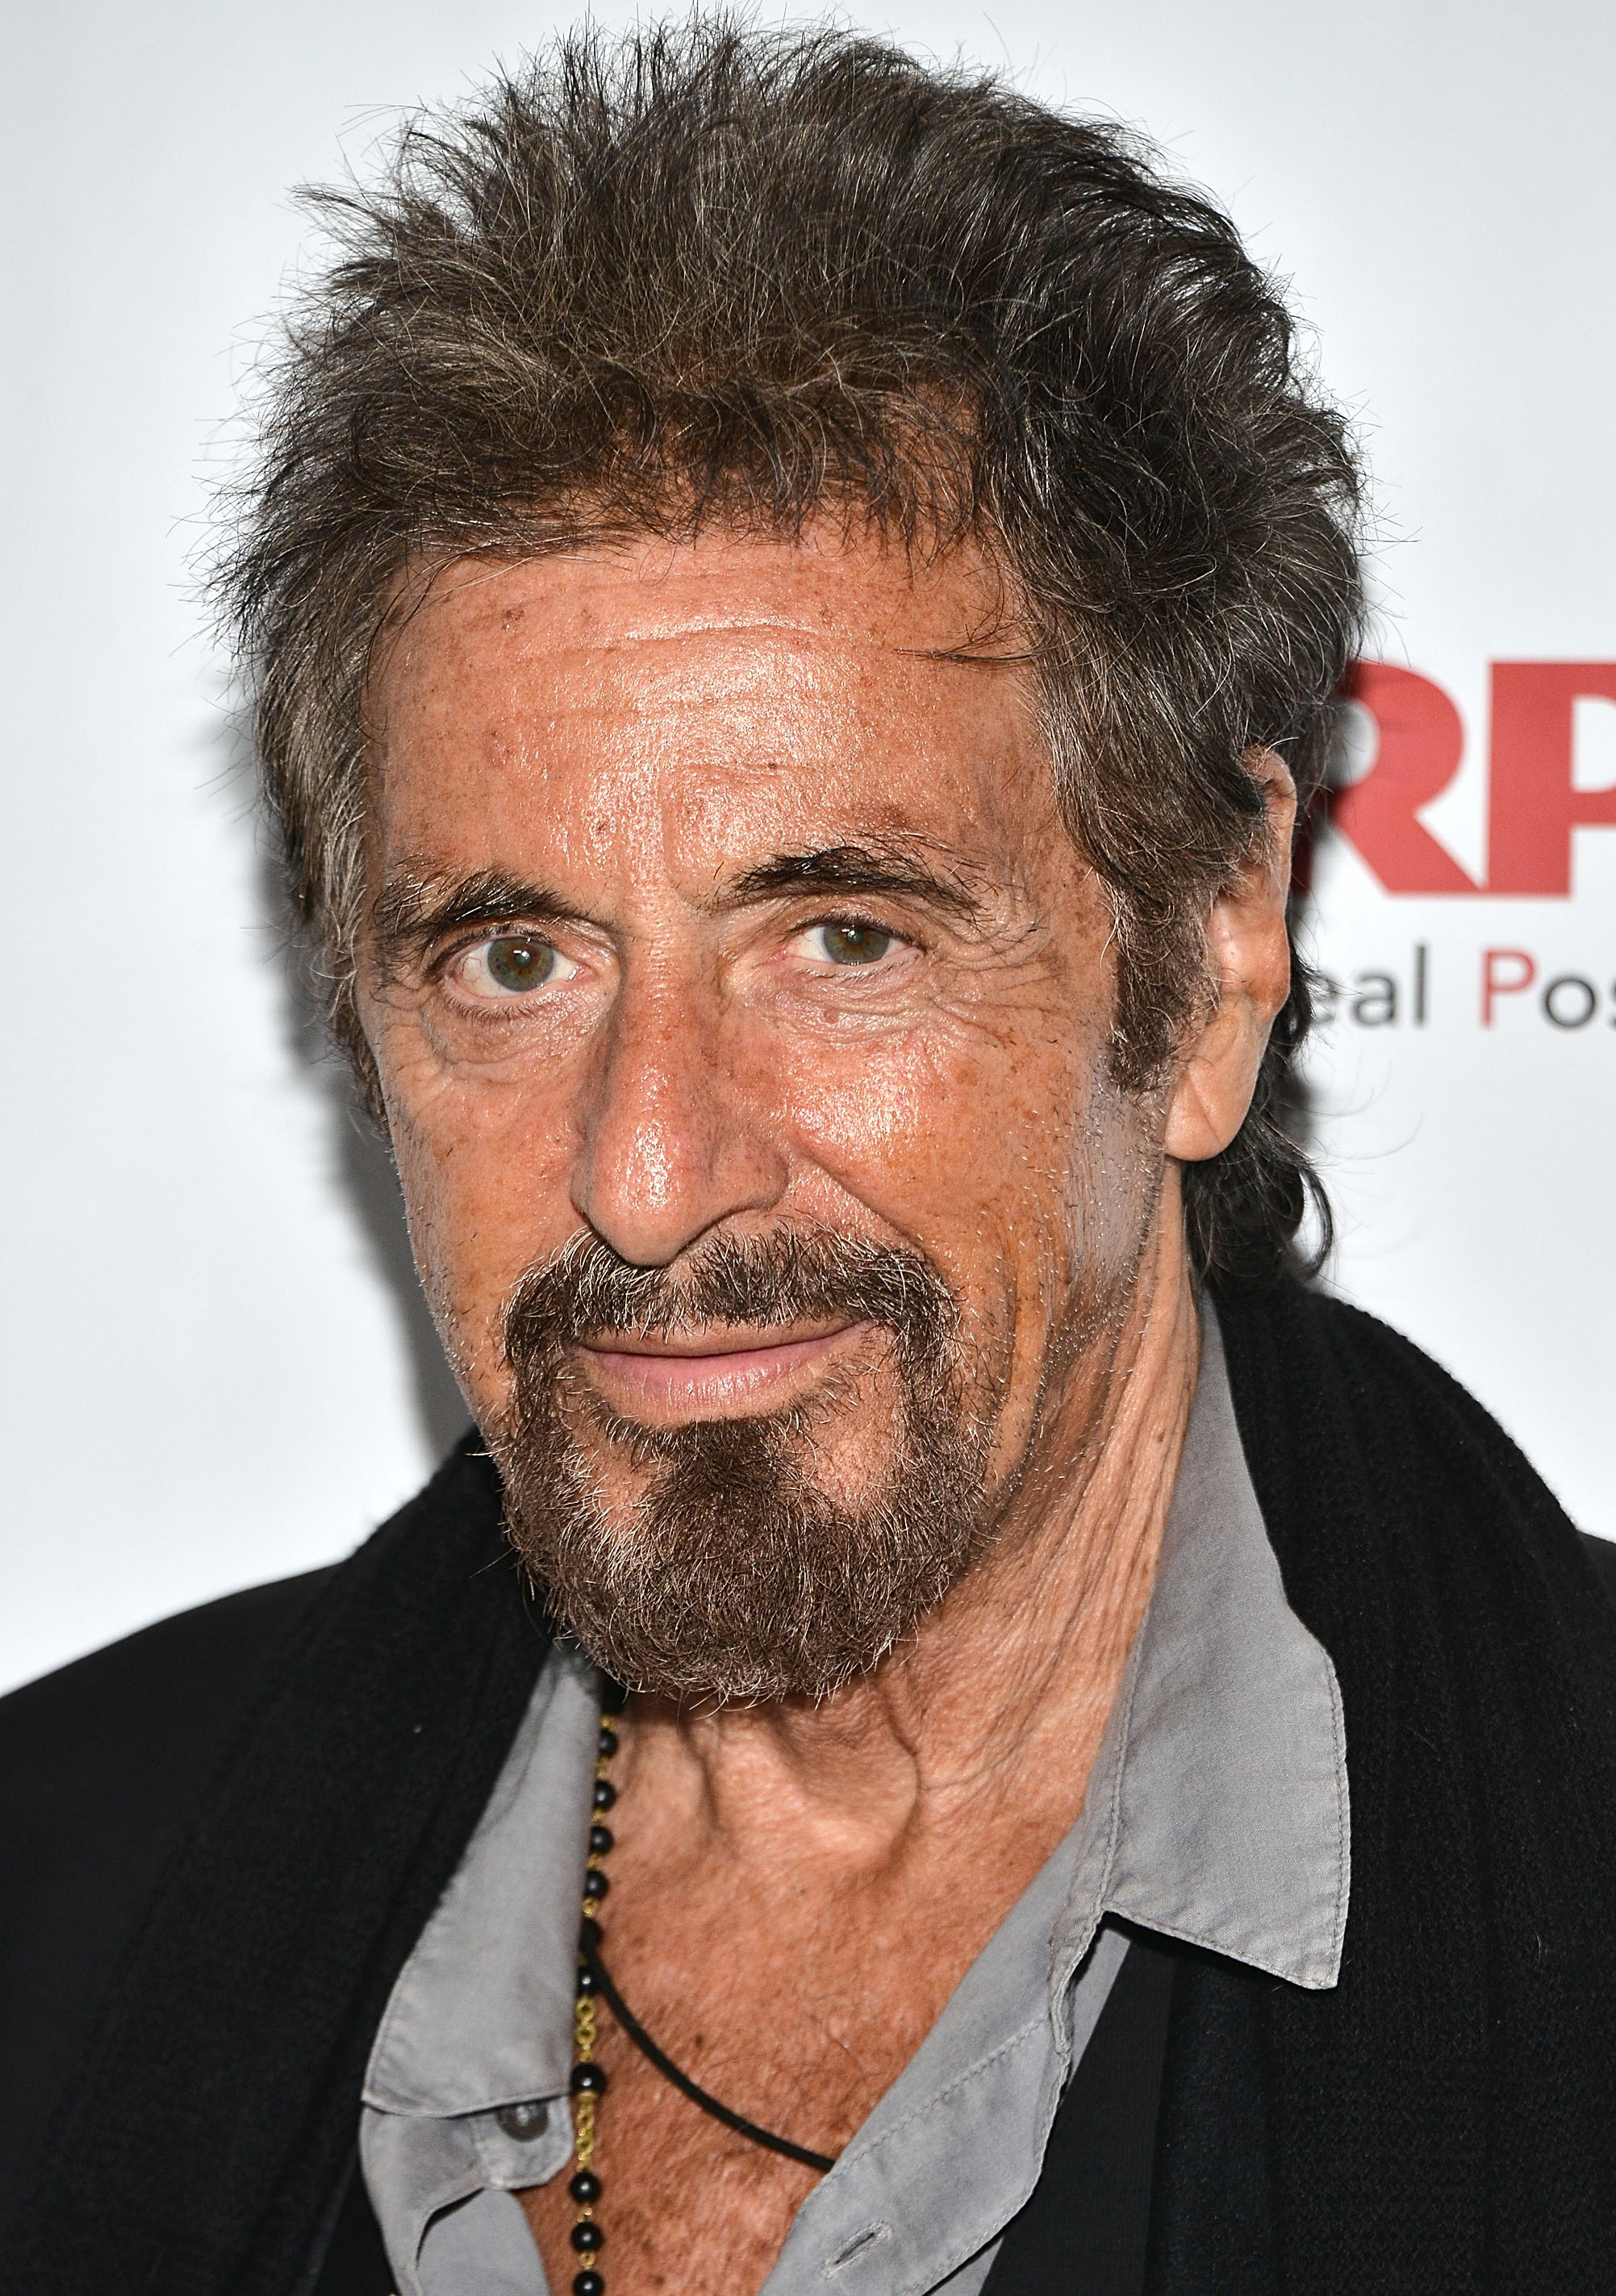 Al Pacino Al Pacino On Acting For The Stage And Screen Jack Shalom